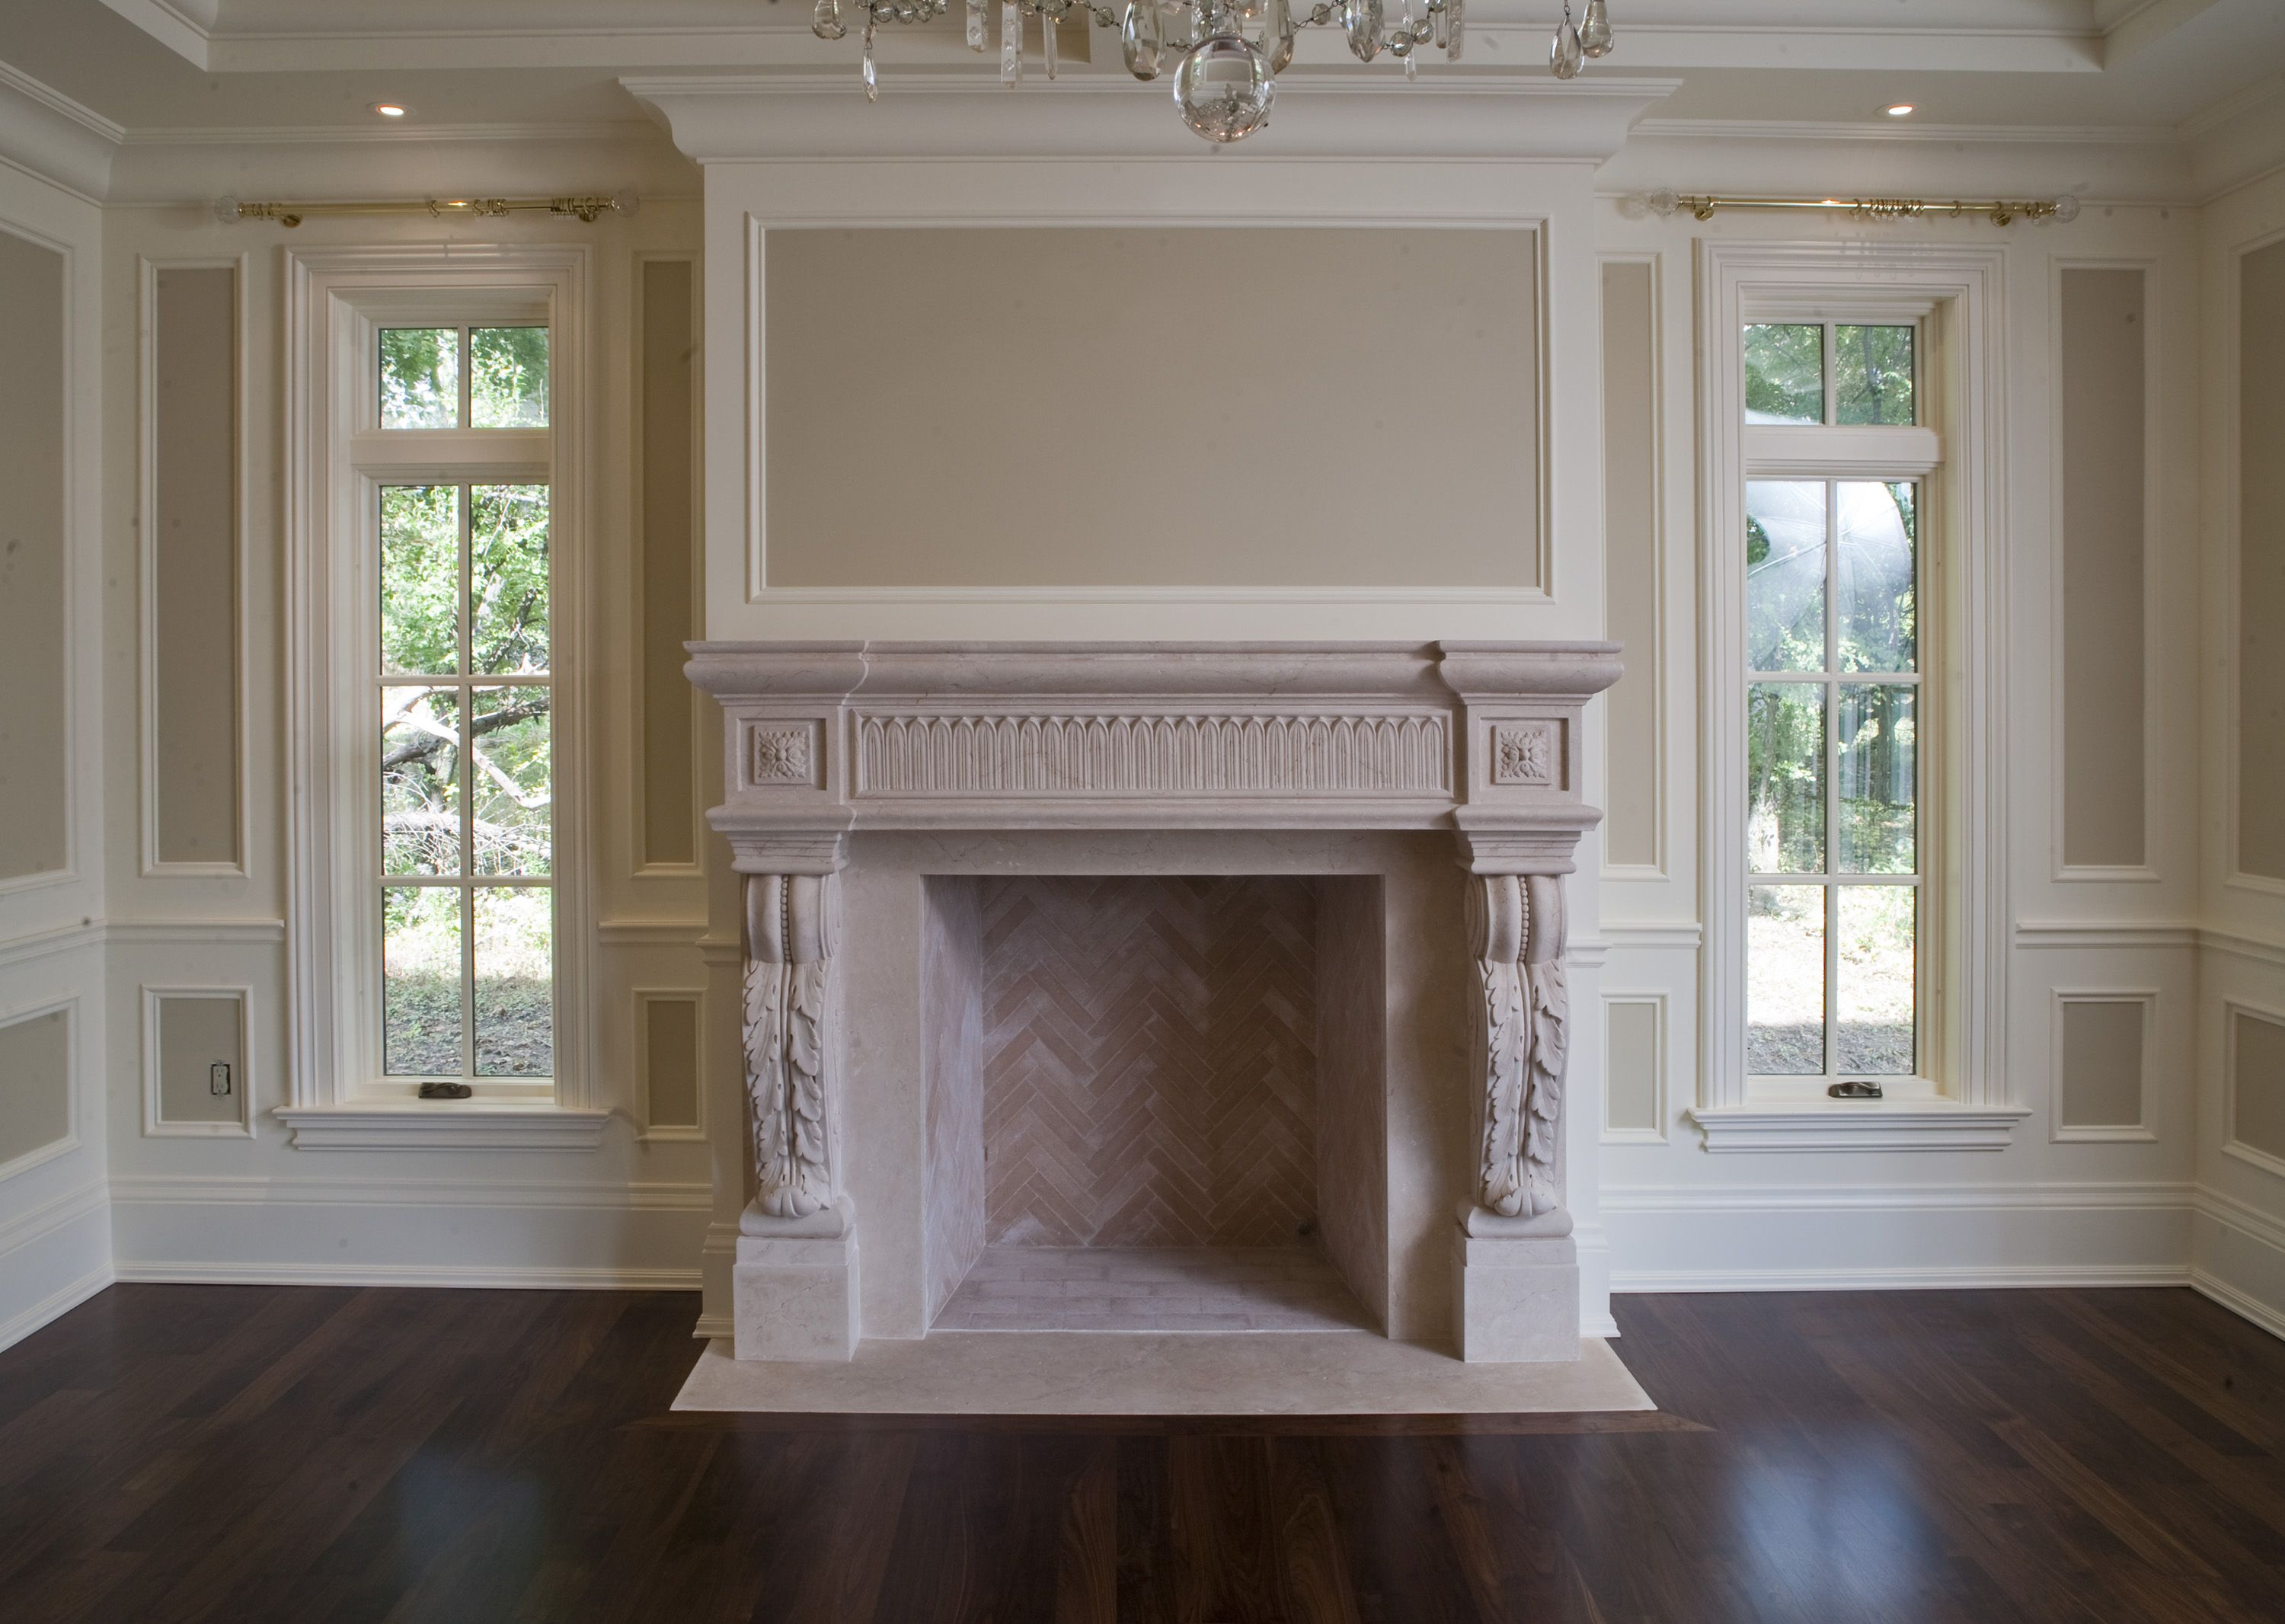 Cast stone fireplace mantel. Very pretty architectural features in ...